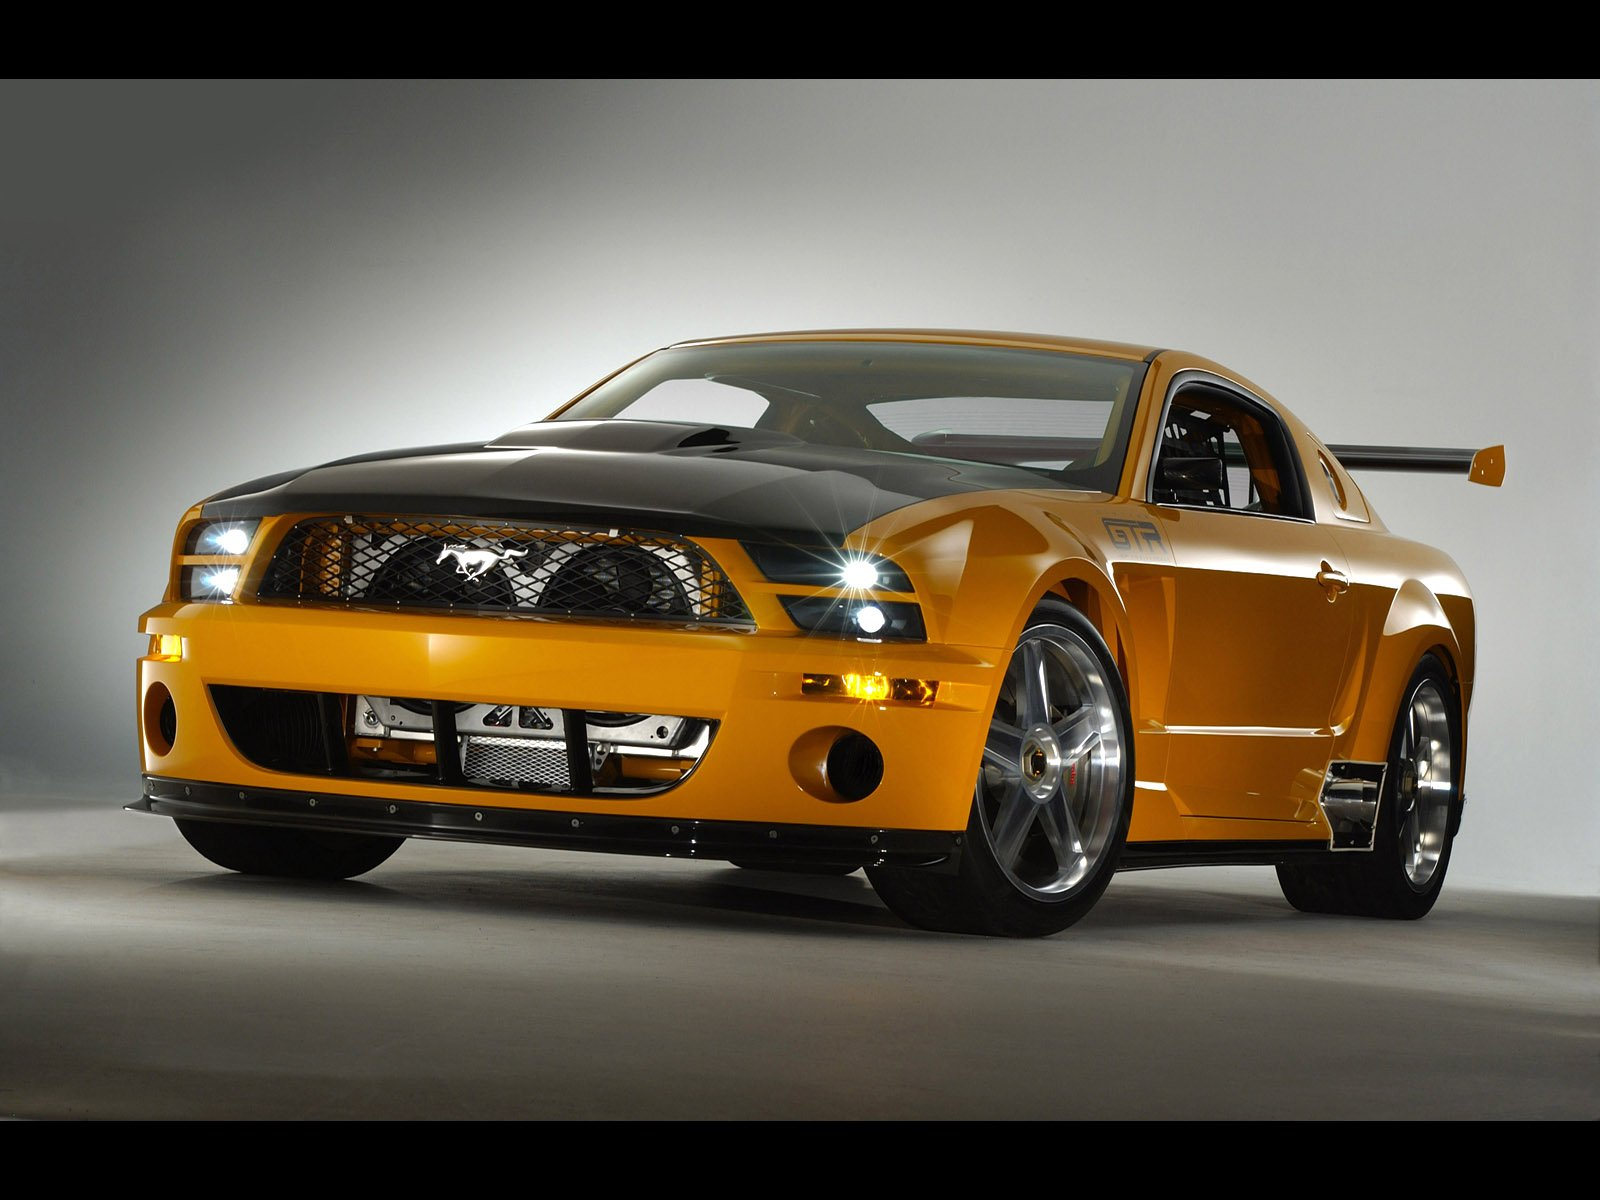 Ford Mustang - 1600 x 1200, 03 из 17